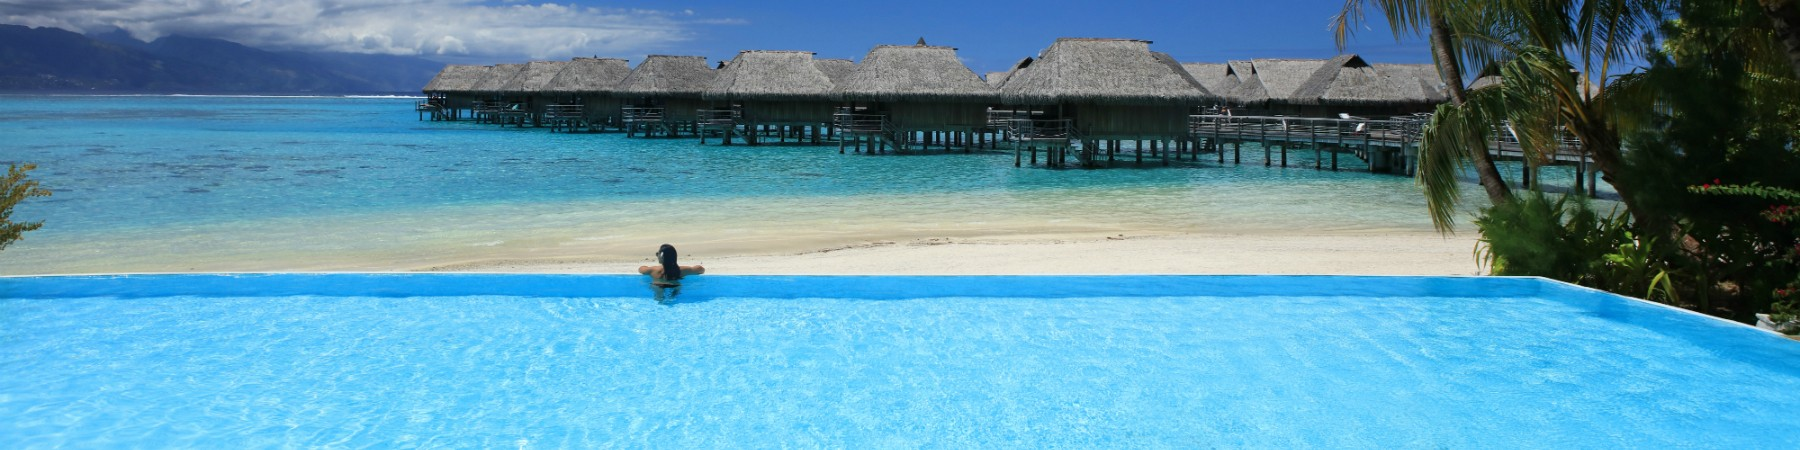 sofitel-moorea-activities1